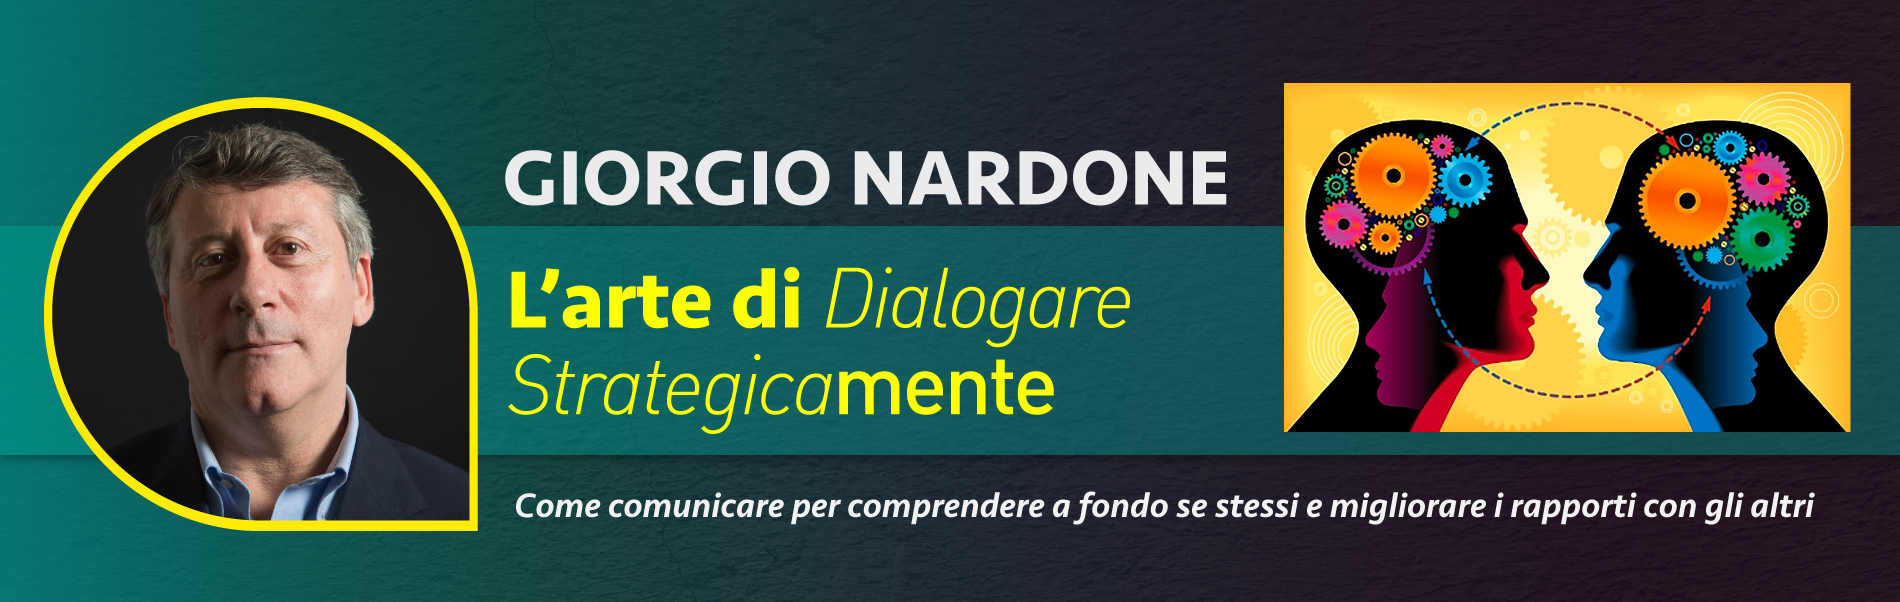 L'arte di Dialogare Strategicamente - Life Strategies